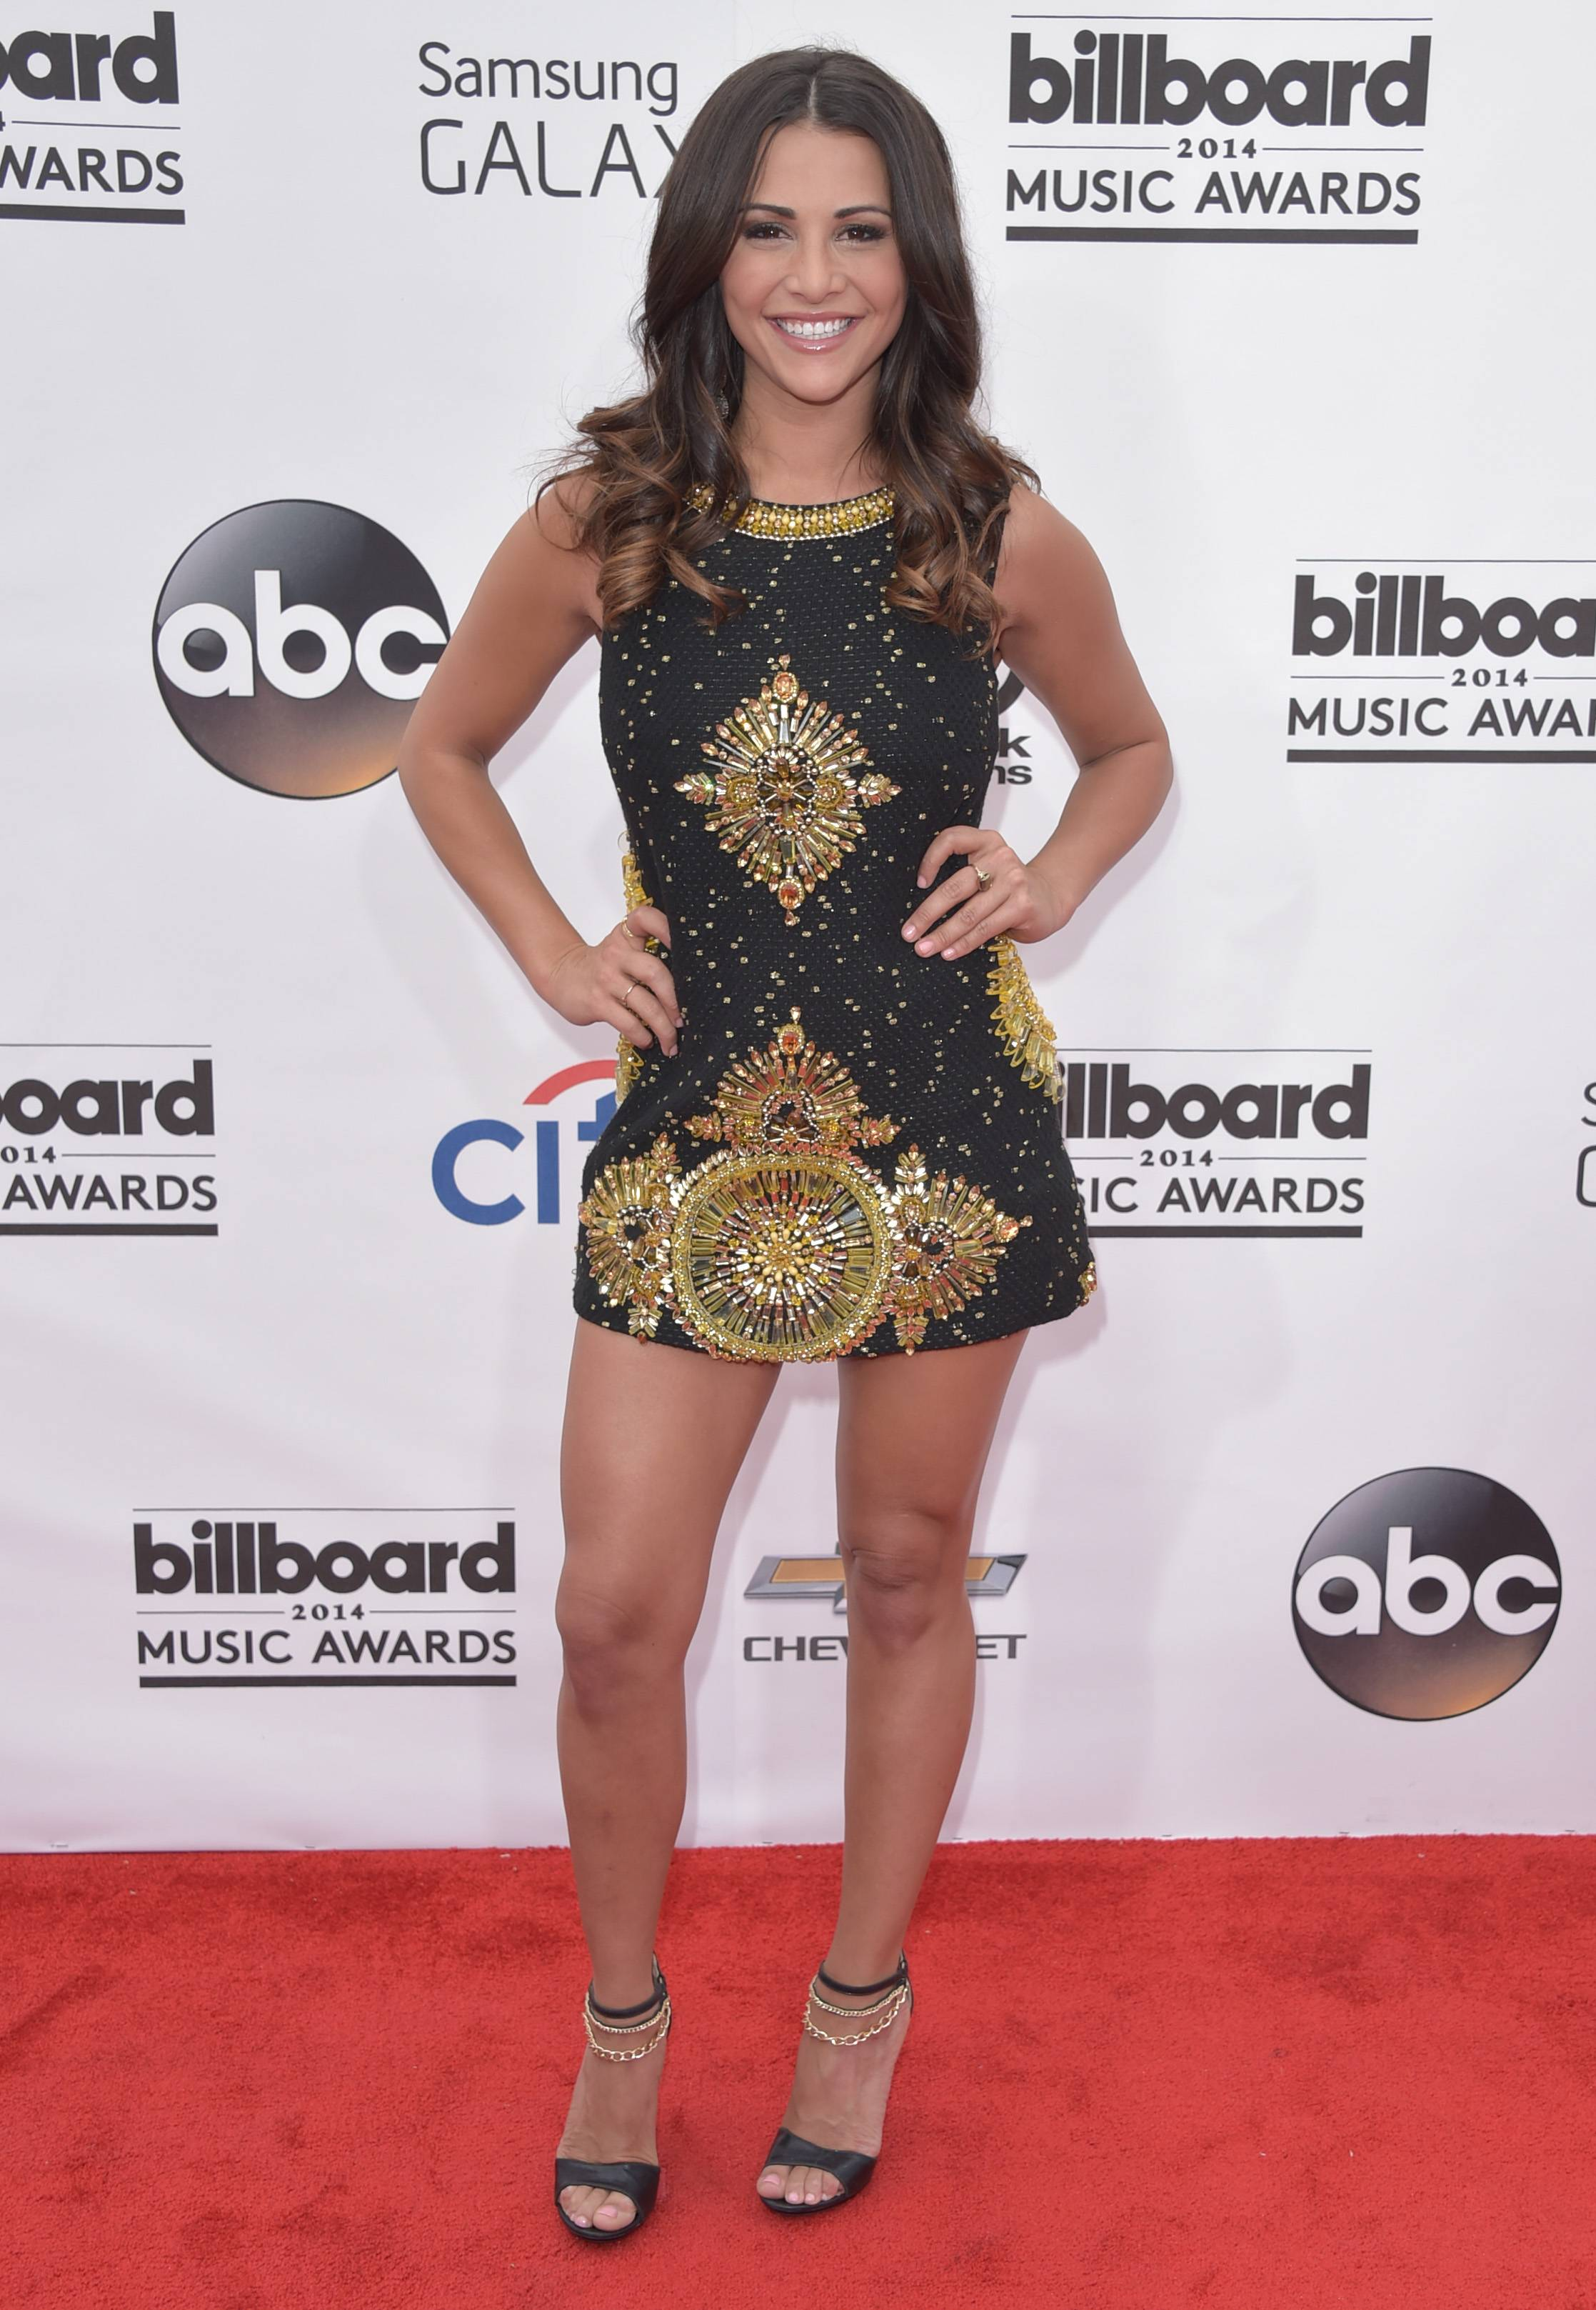 Andi Dorfman arrives at the Billboard Music Awards at the MGM Grand Garden Arena on Sunday, May 18, 2014, in Las Vegas.